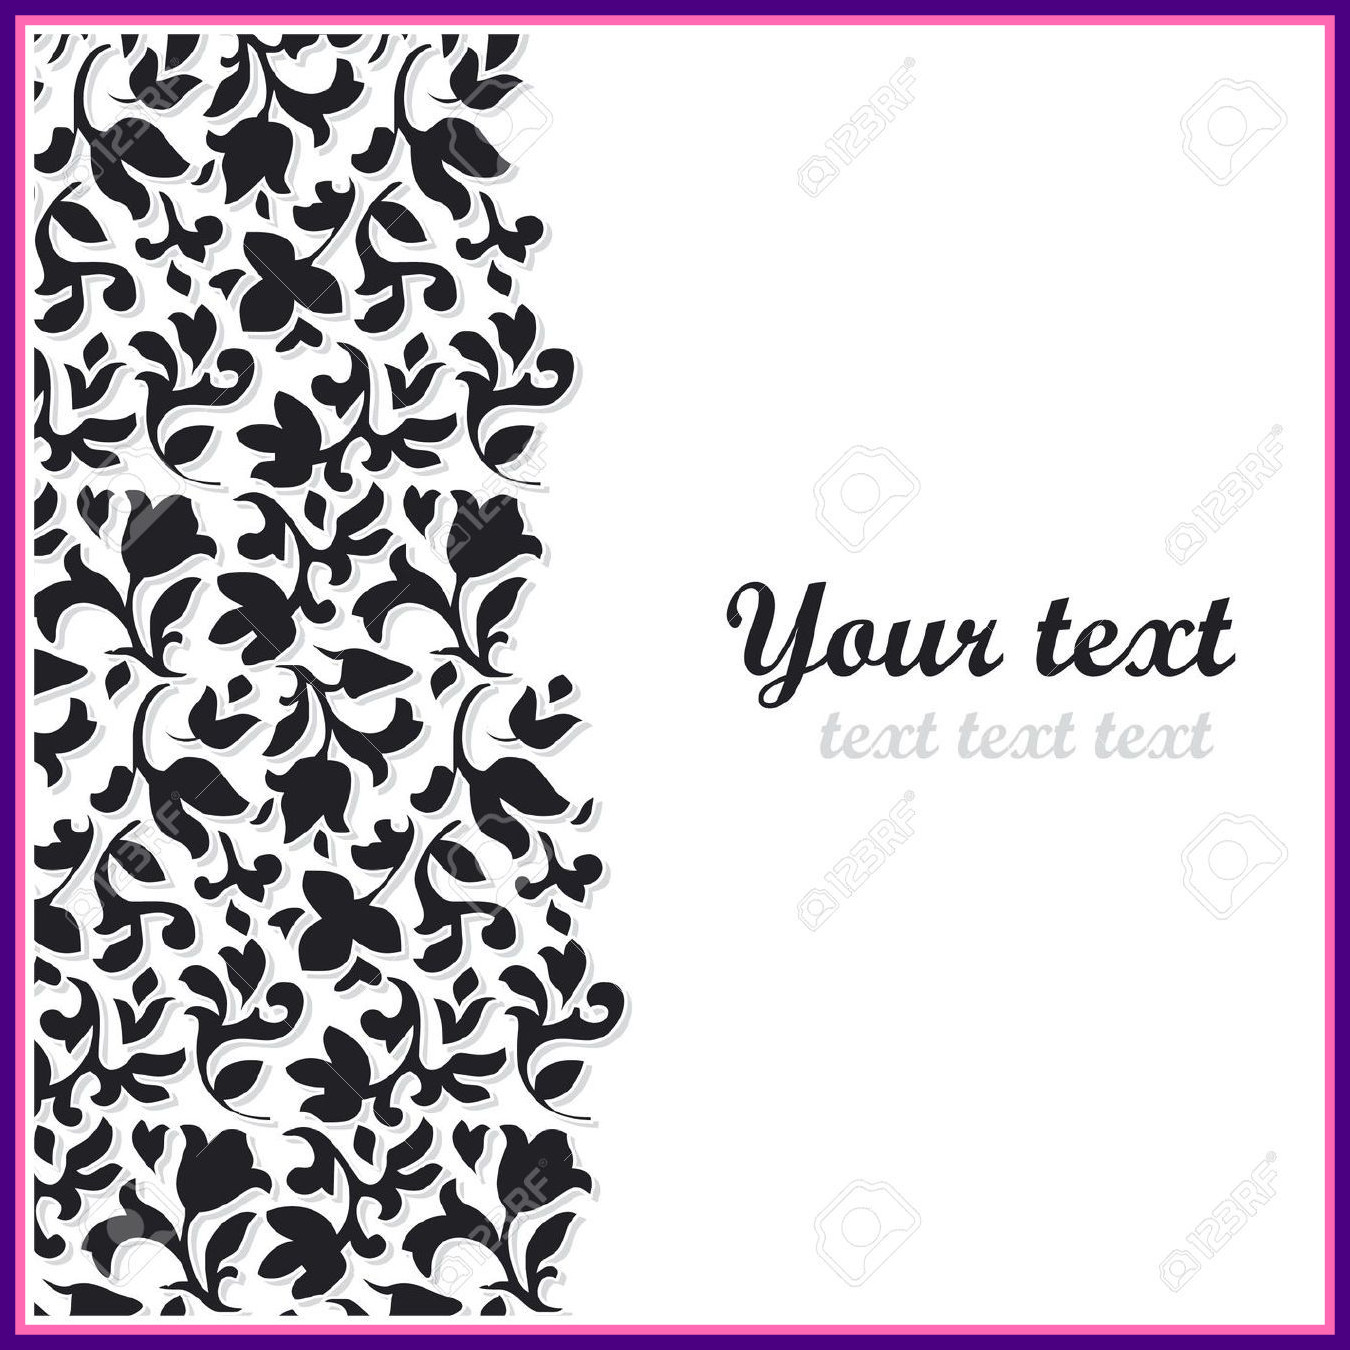 Flower Vector Black And White At Getdrawings Com Free For Personal